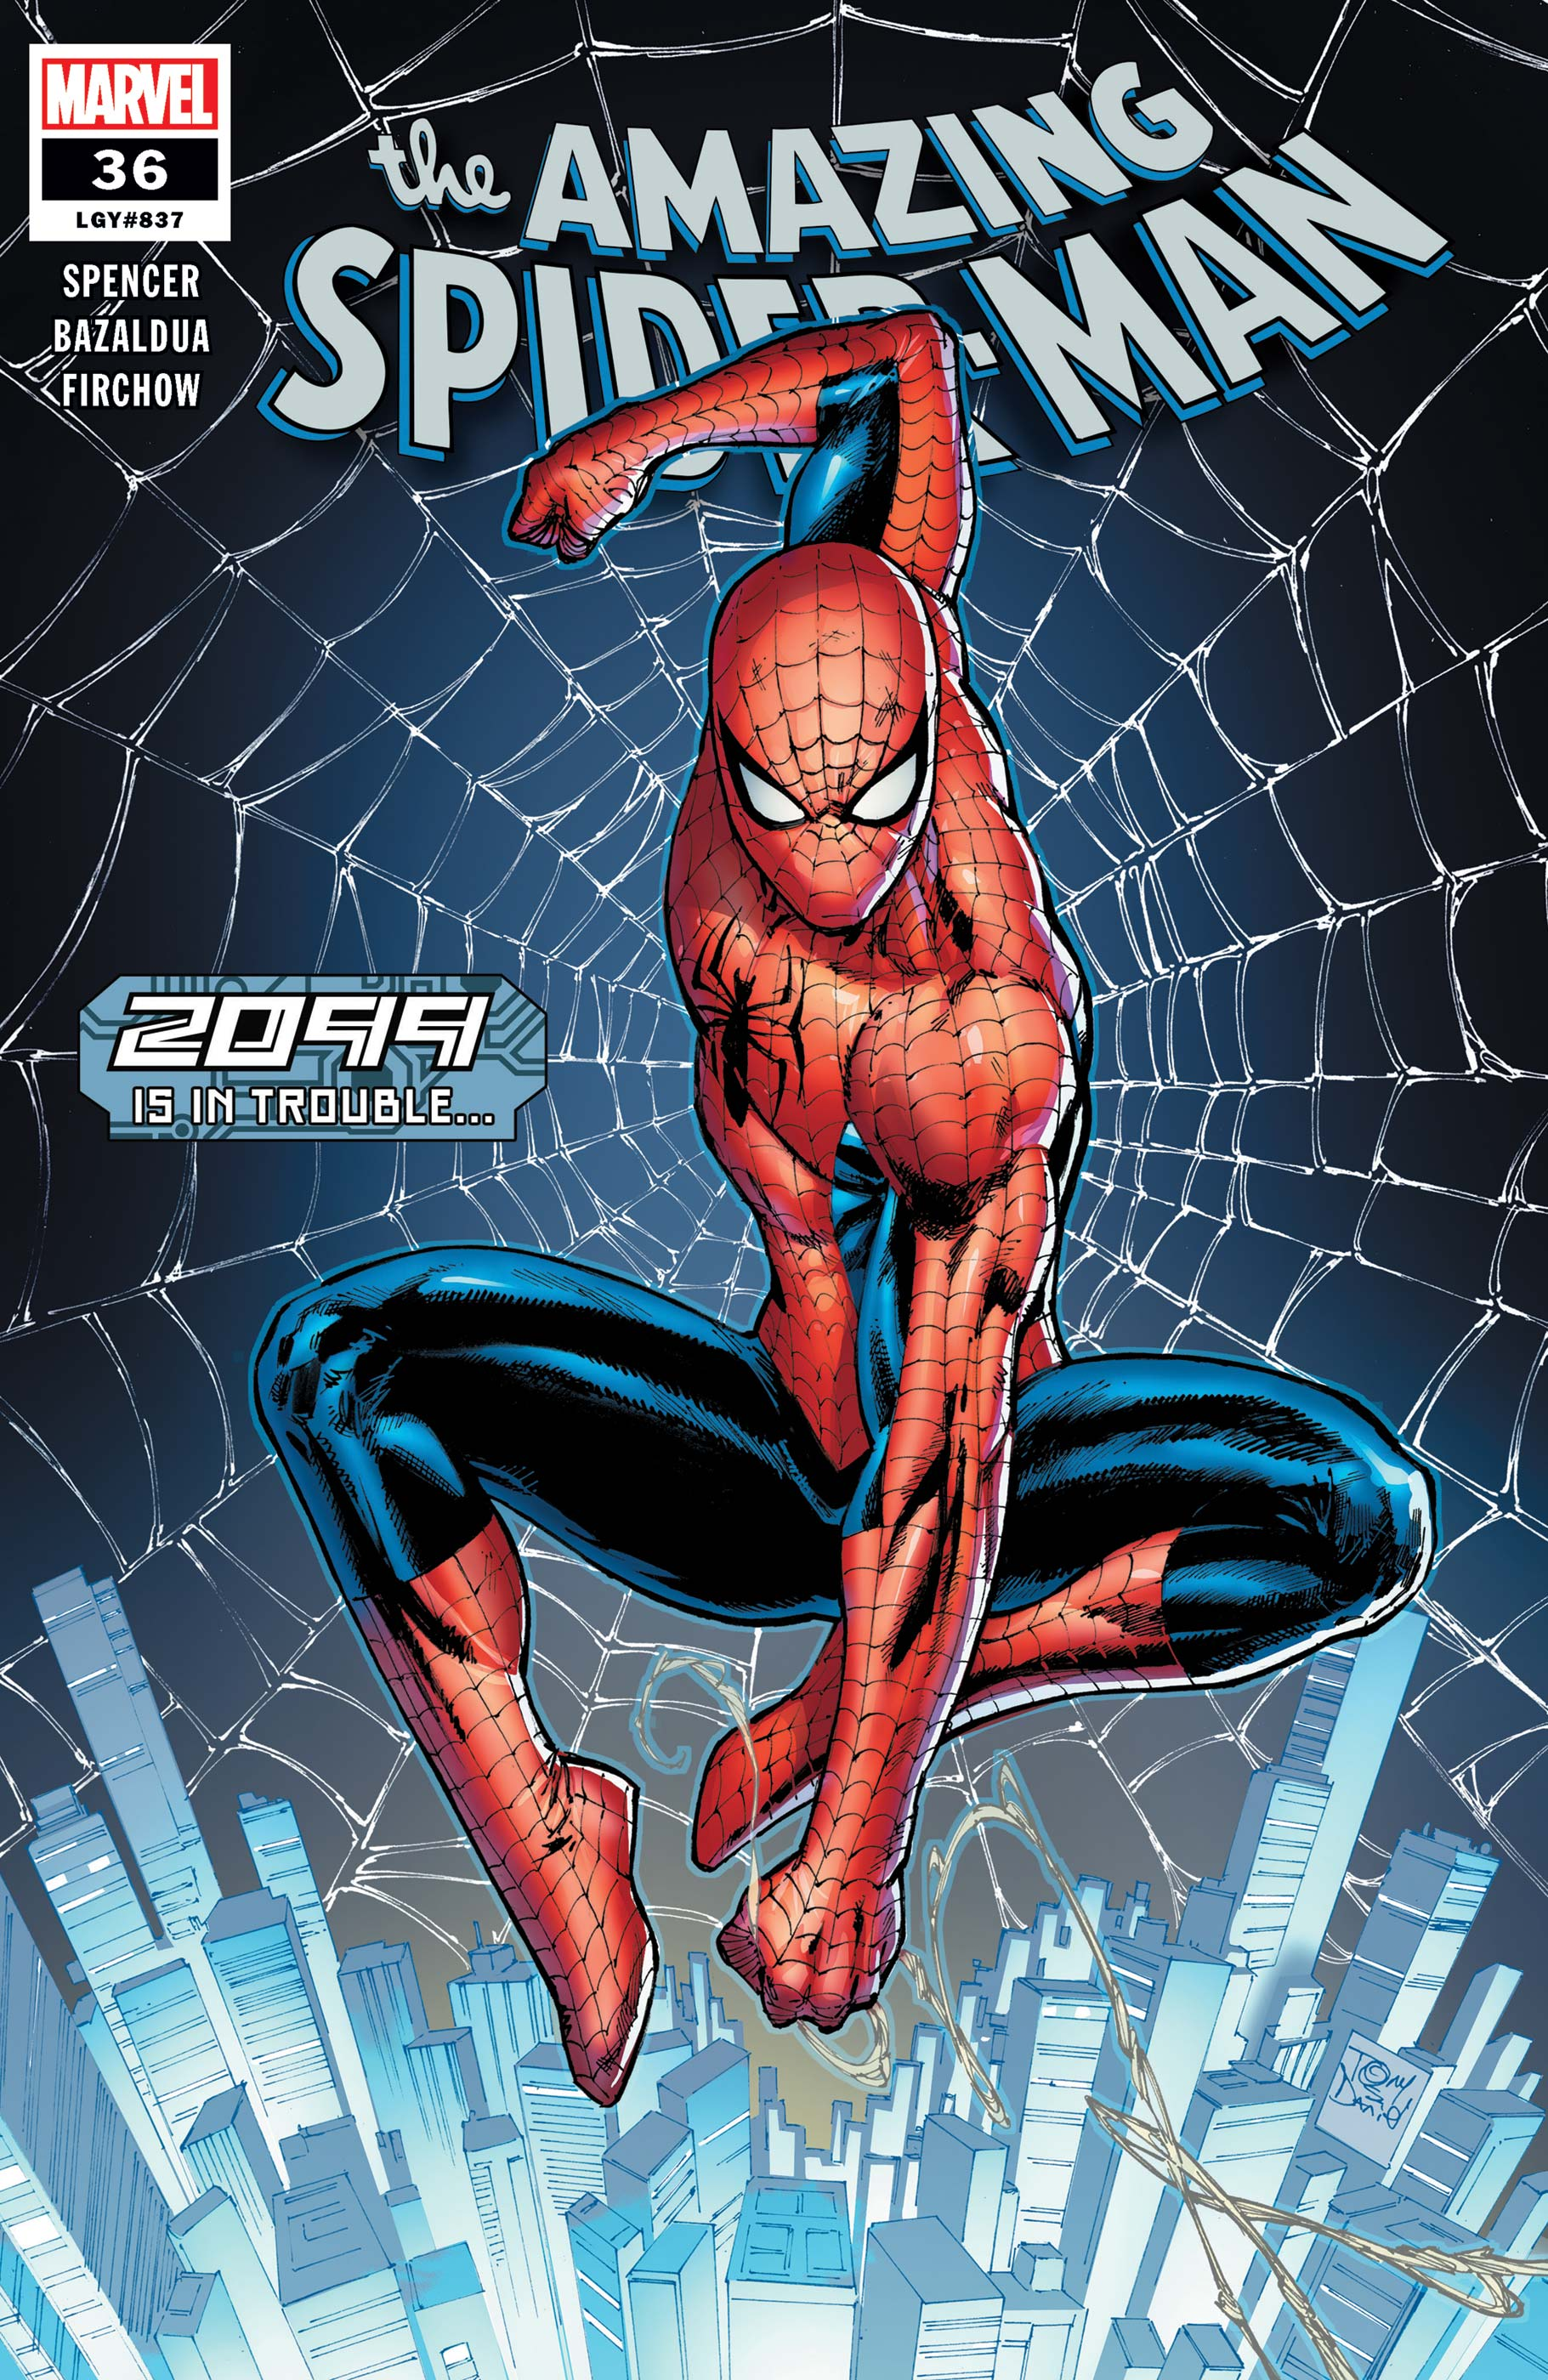 The Amazing Spider-Man (2018) #36